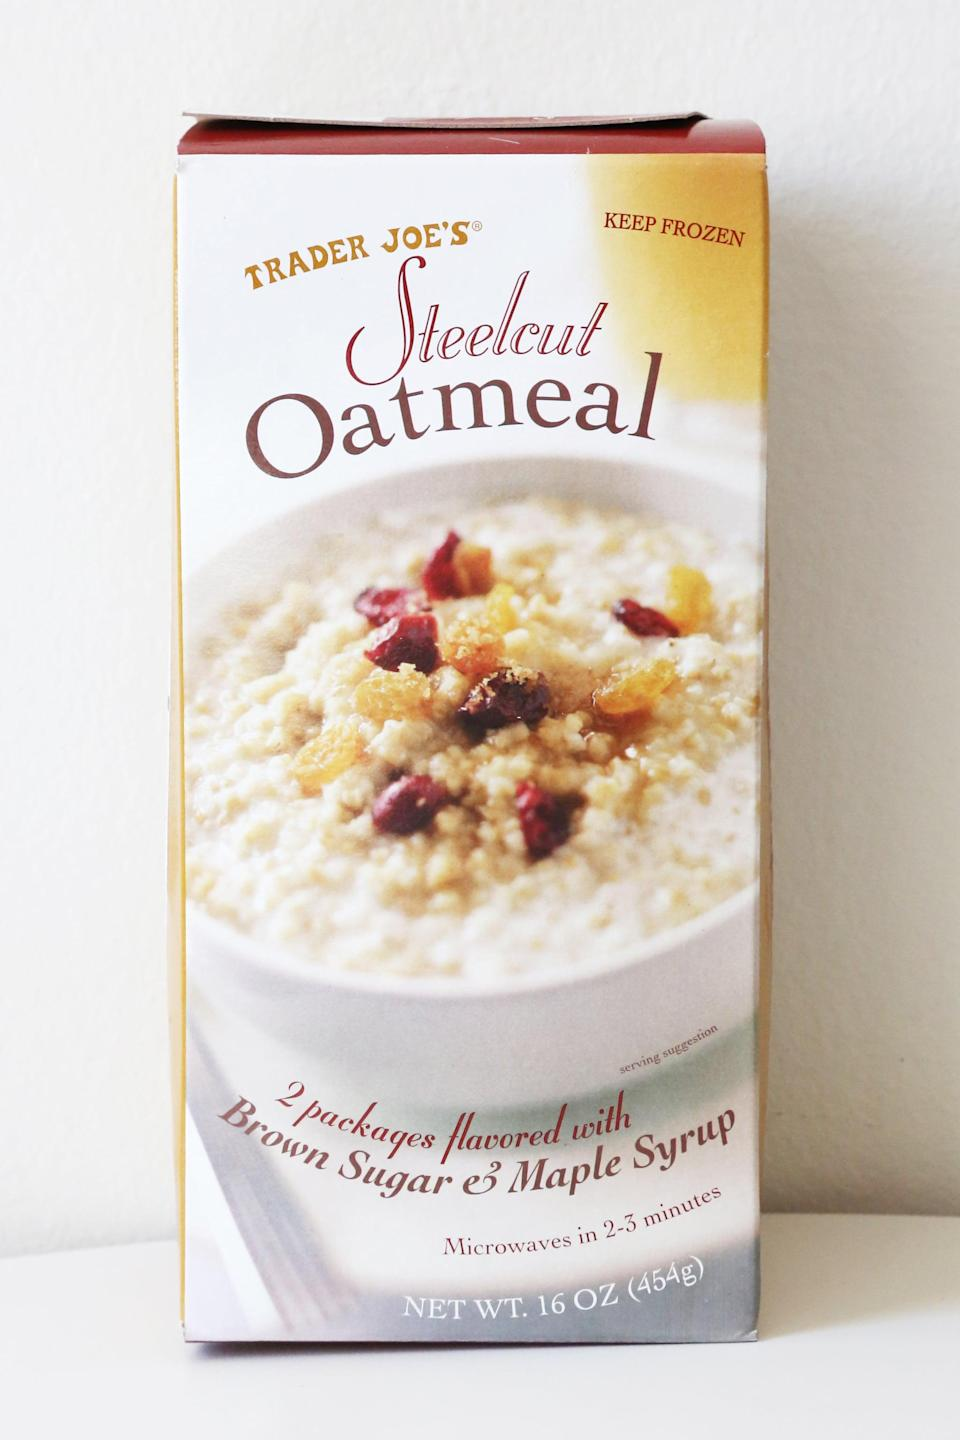 <p>Flavored with brown sugar and maple syrup, these frozen steel-cut oats take a matter of minutes to make. Throw them in your bag and take them to work, or make them right before you head out the door - everyone has time for this microwaveable breakfast.</p>